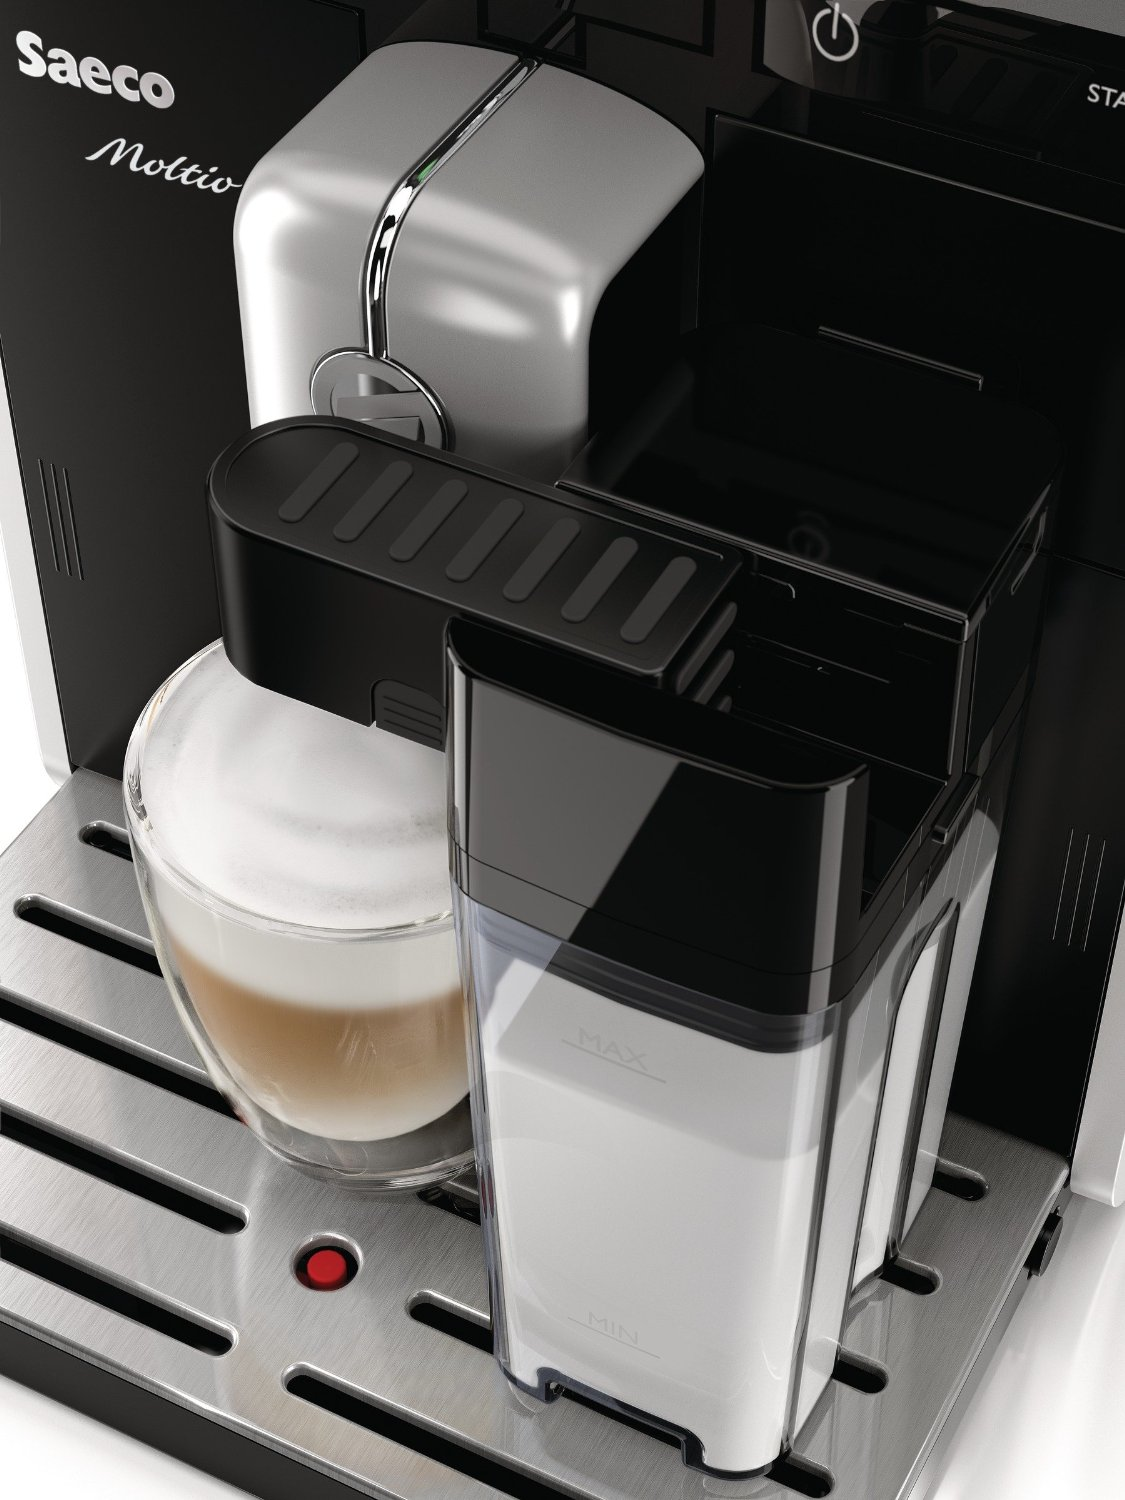 saeco hd8769 01 kaffee vollautomat moltio one touch kaffeevollautomat test. Black Bedroom Furniture Sets. Home Design Ideas